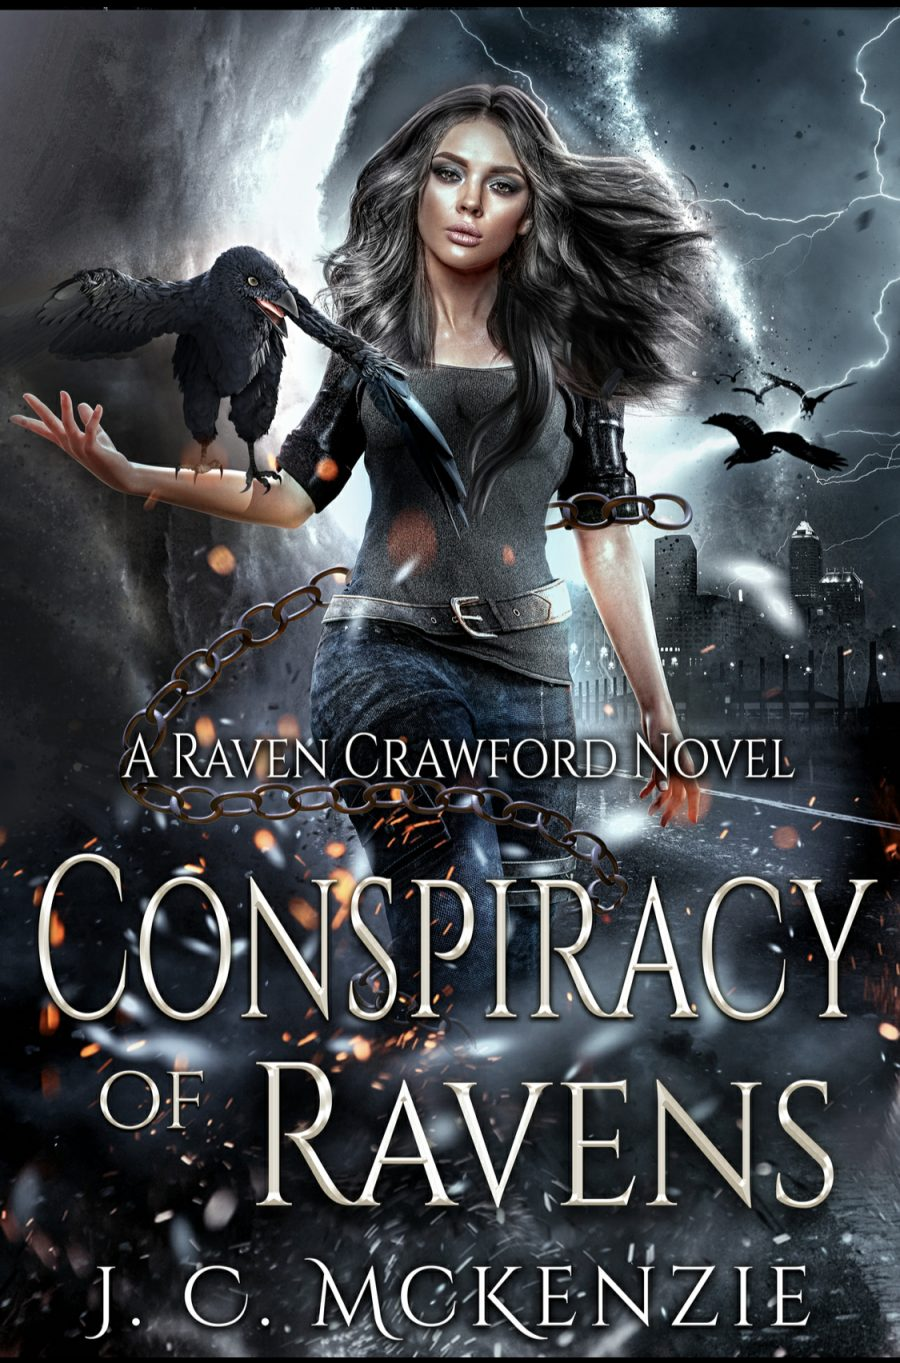 Conspiracy of Ravens by J.C. McKenzie - A Book Review #BookReview #UrbanFantasy #NewSeries #RavenCrawford #4Stars #InPaperback